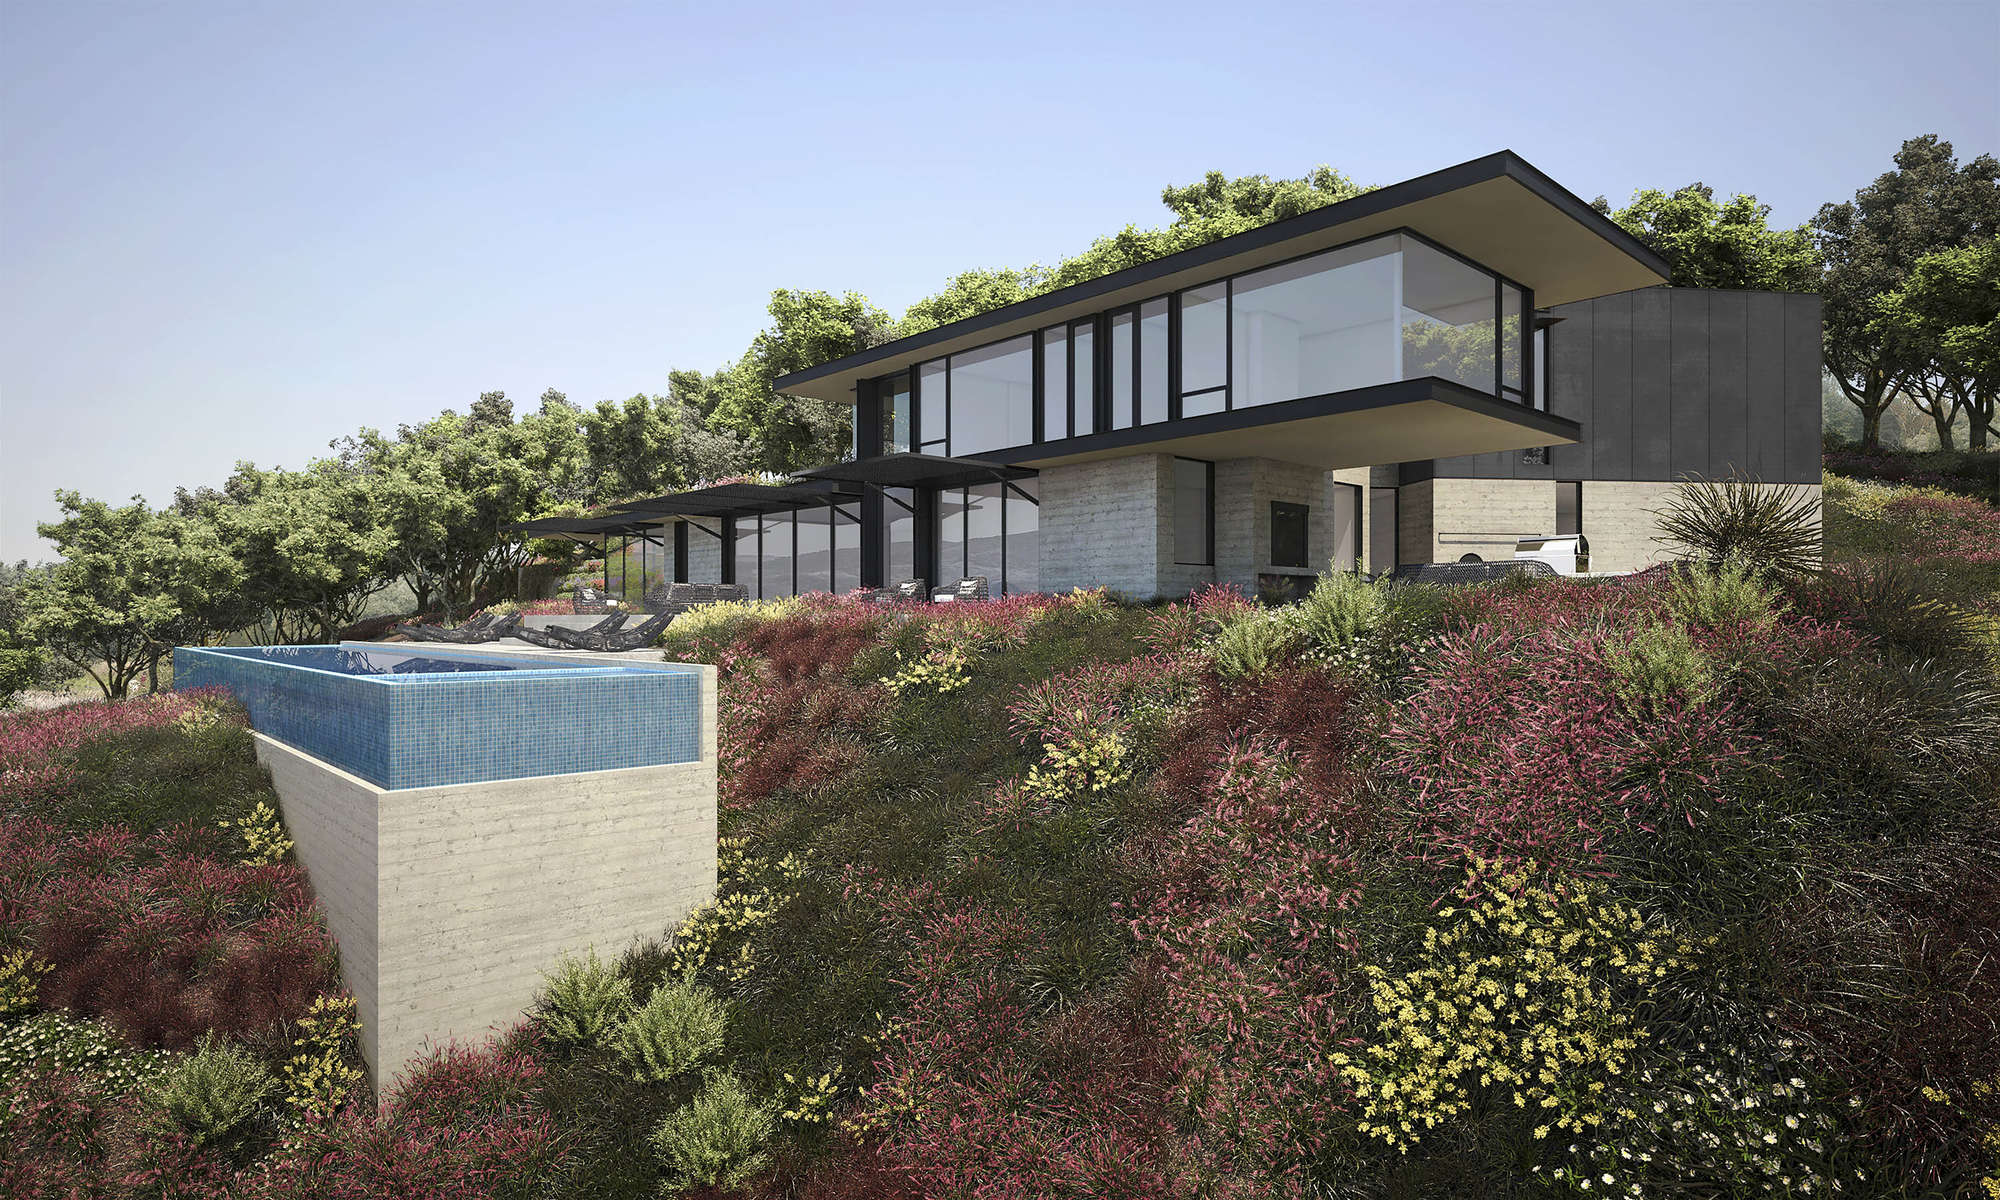 rendering of modular house on hill with shrubland around it